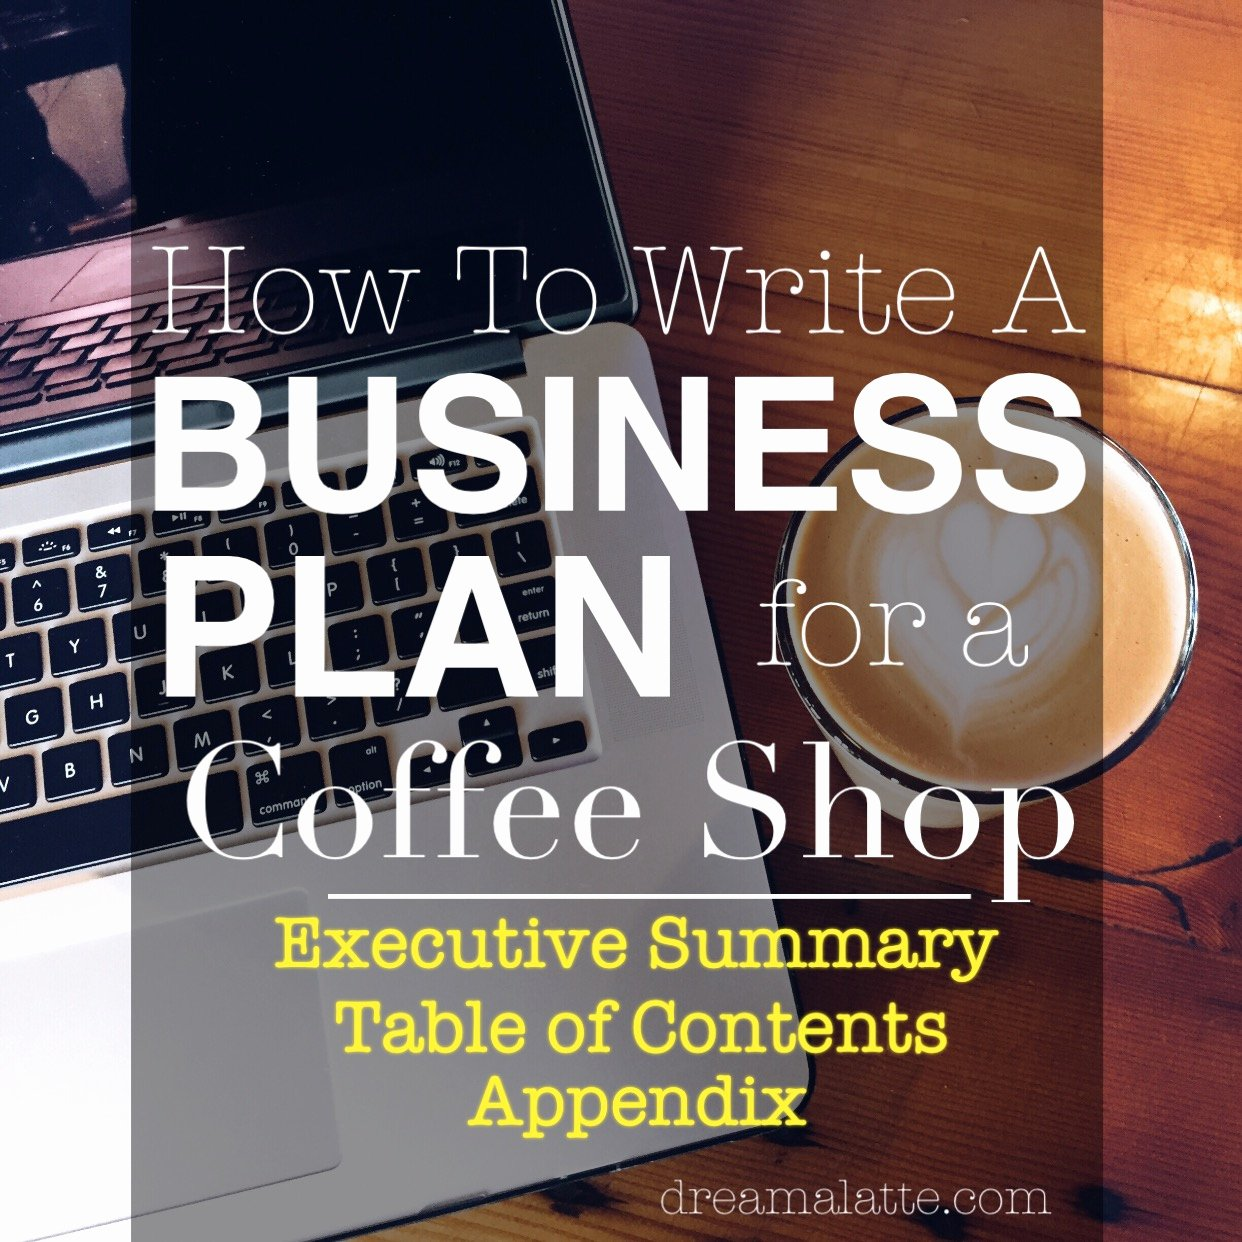 Coffee Shop Business Plan Template Beautiful Coffee Shop Business Plan Executive Summary Dream A Latte